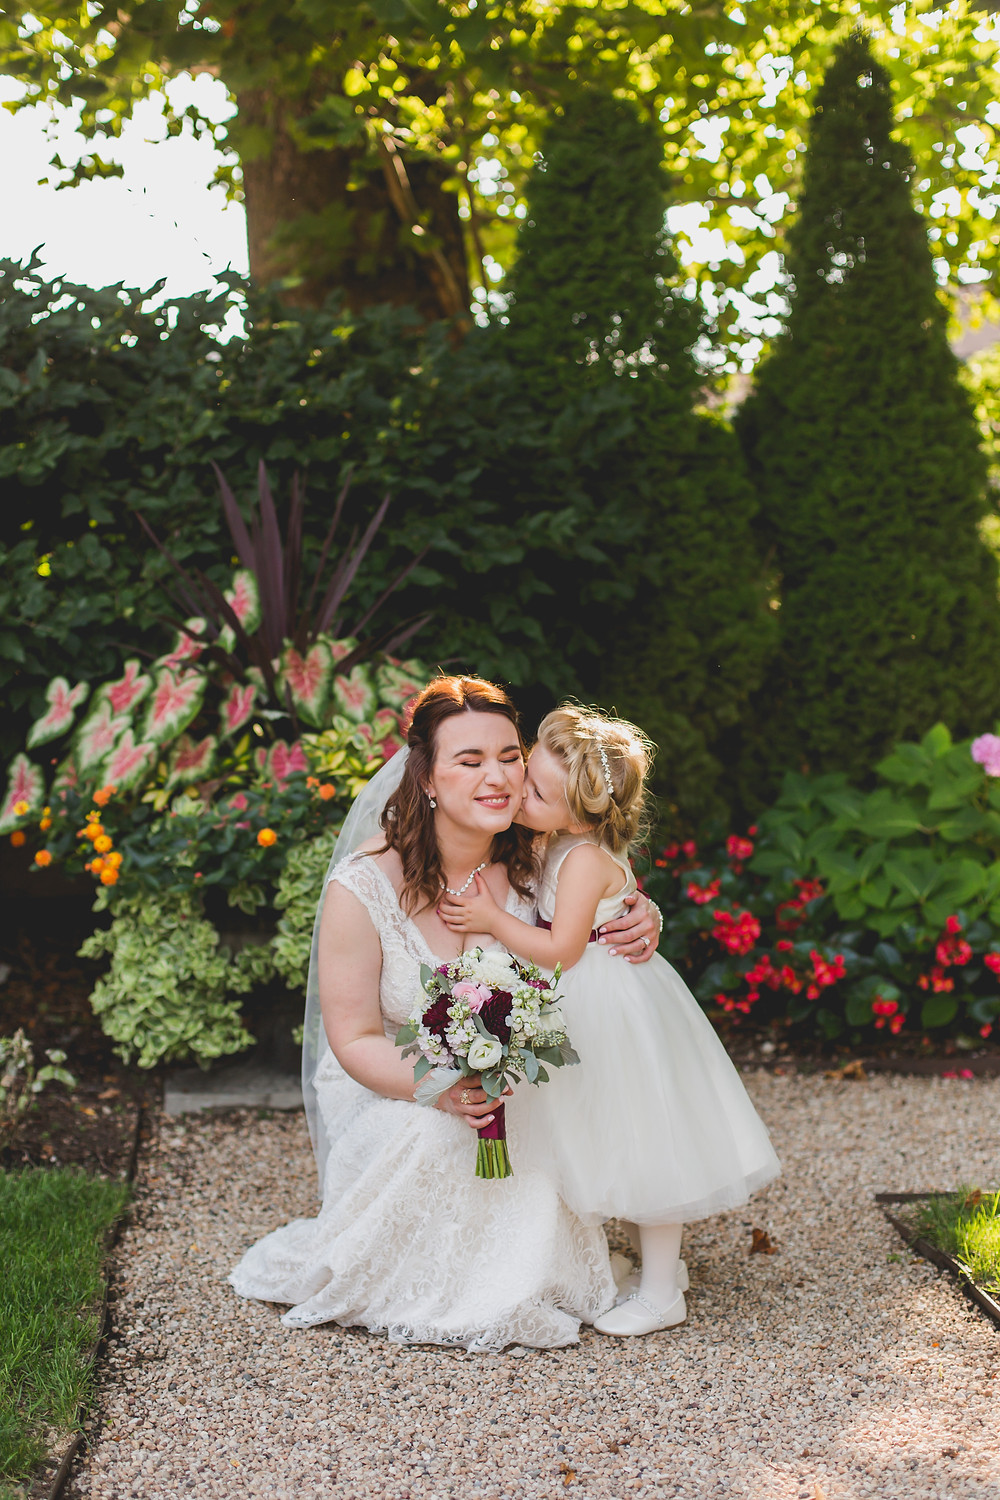 Mom and daughter on wedding day. Hotel Baker Saint Charles IL. wedding photographer